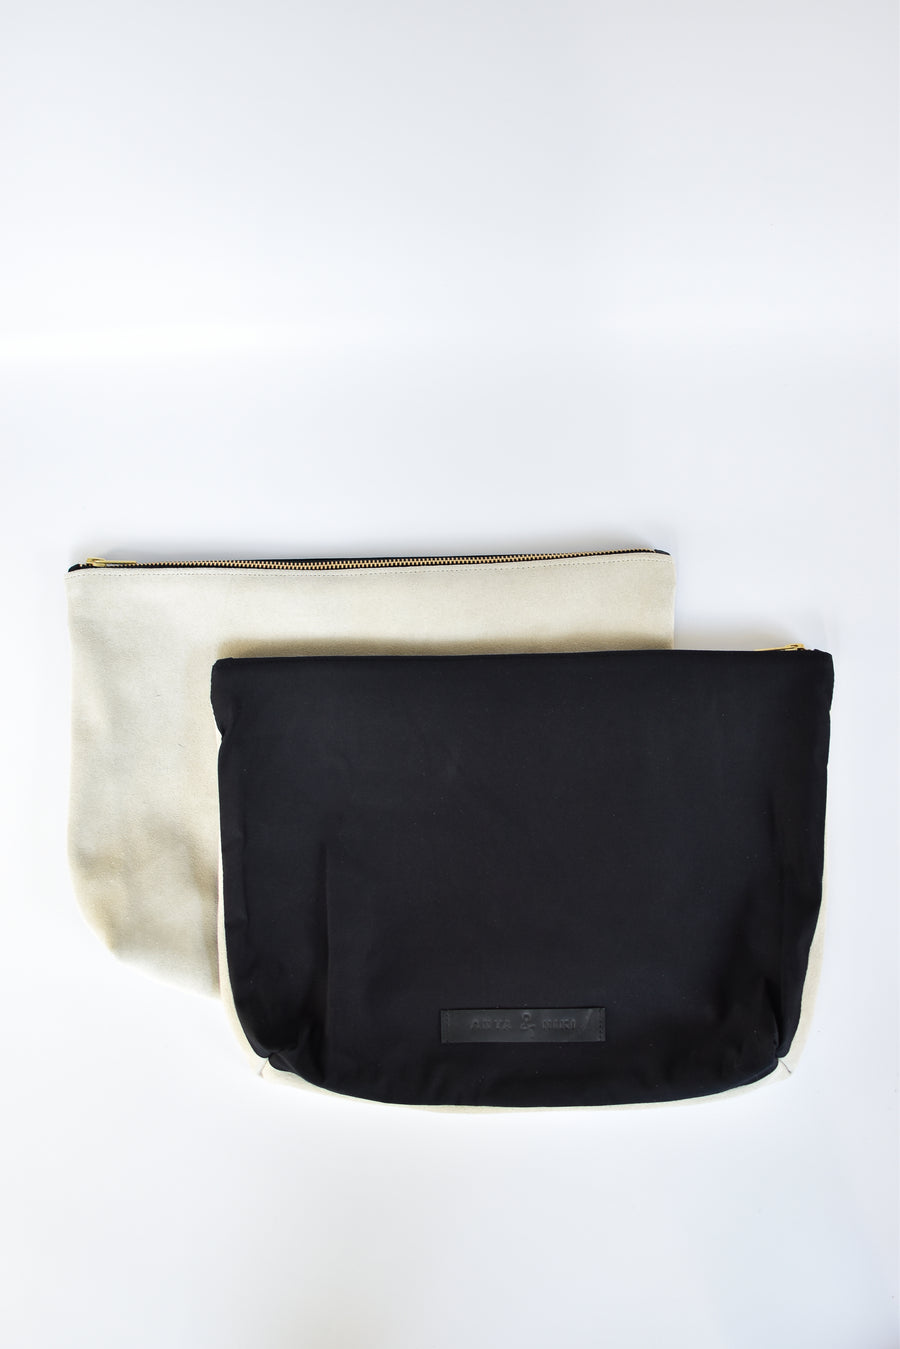 Black cotton canvas and off-white suede large pouch with brass zipper and leather logo label.